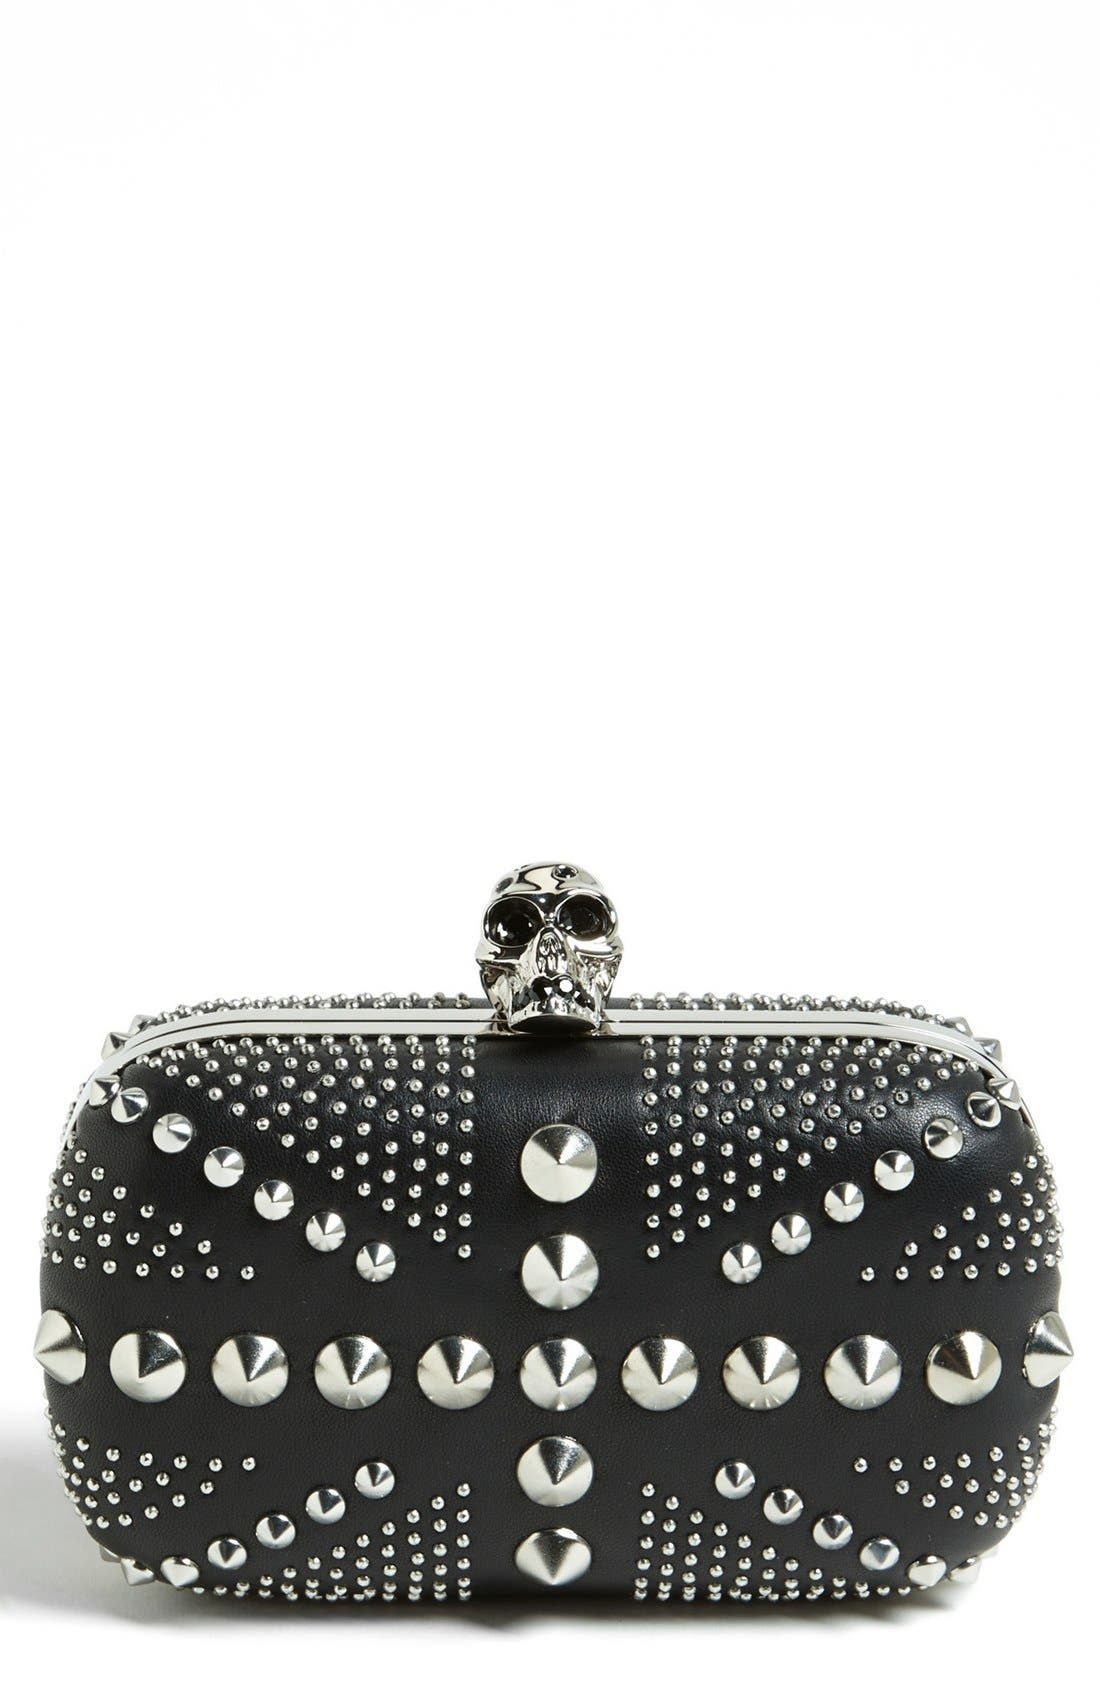 Alternate Image 1 Selected - Alexander McQueen 'Britannia' Studded Skull Clutch